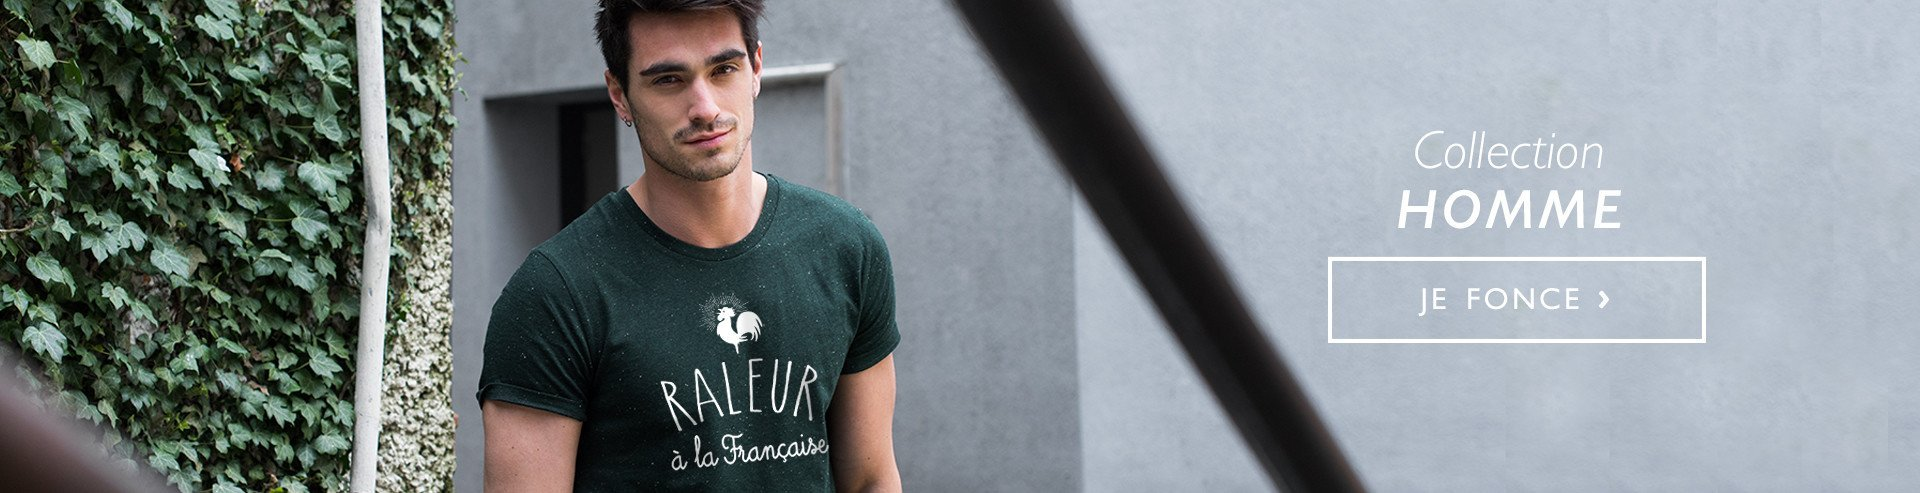 Fabuleuse collection homme